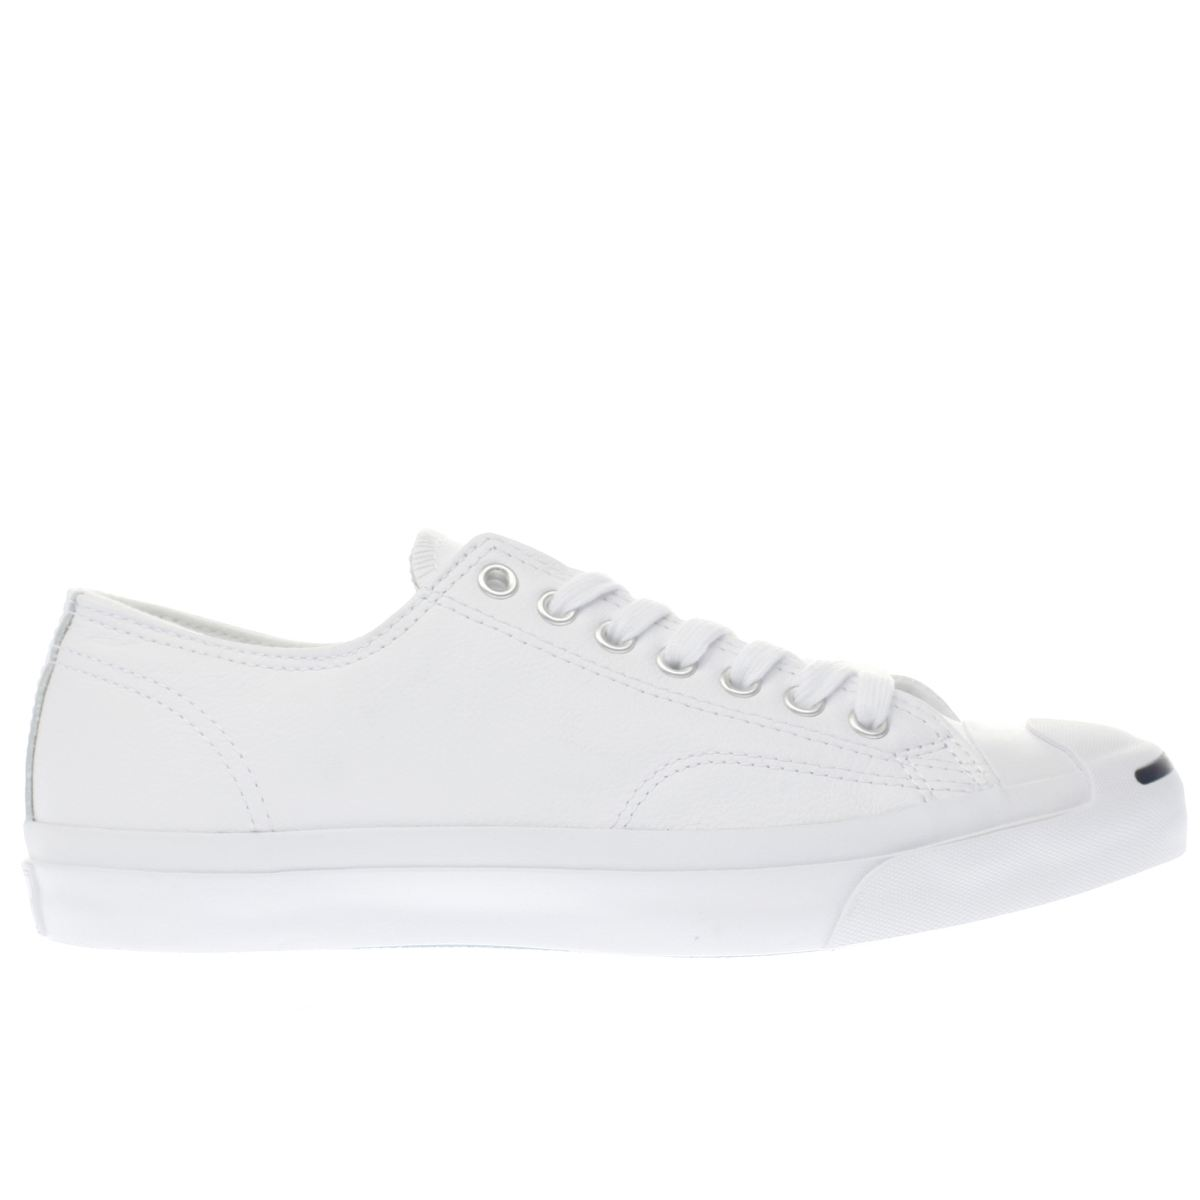 converse white jack purcell leather trainers